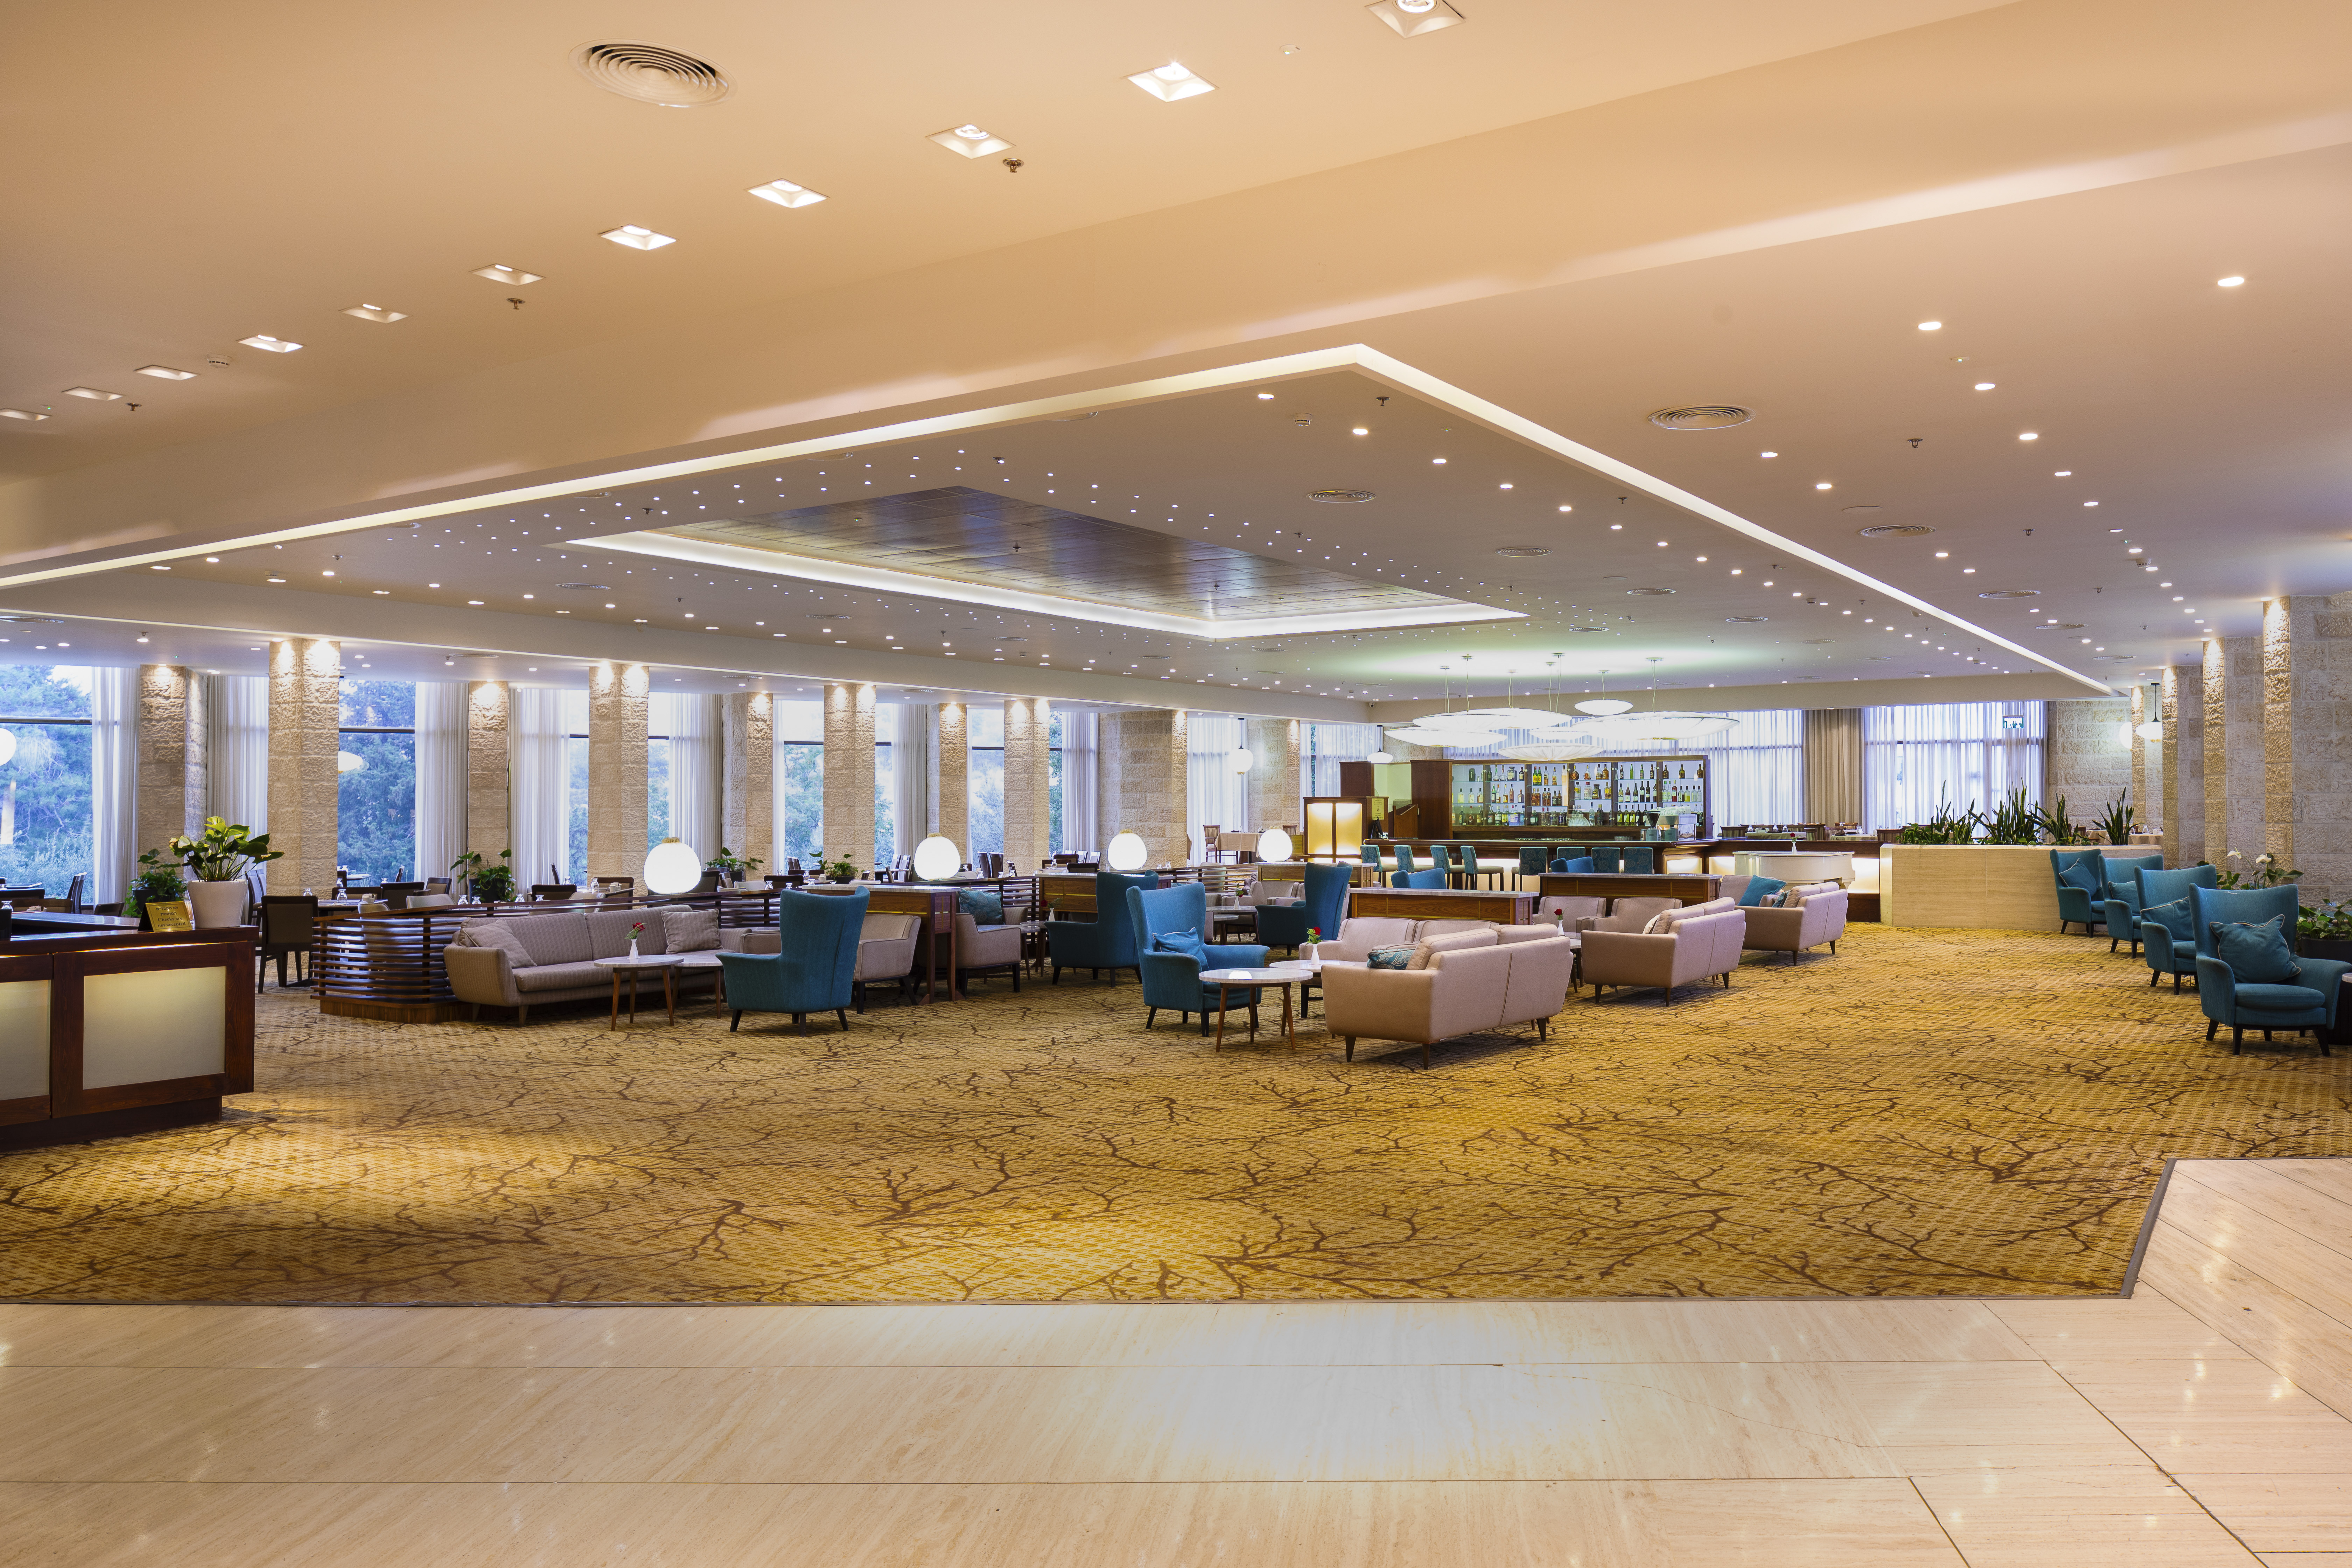 The large seating area in the lobby of the Ramada Hotel, Jerusalem